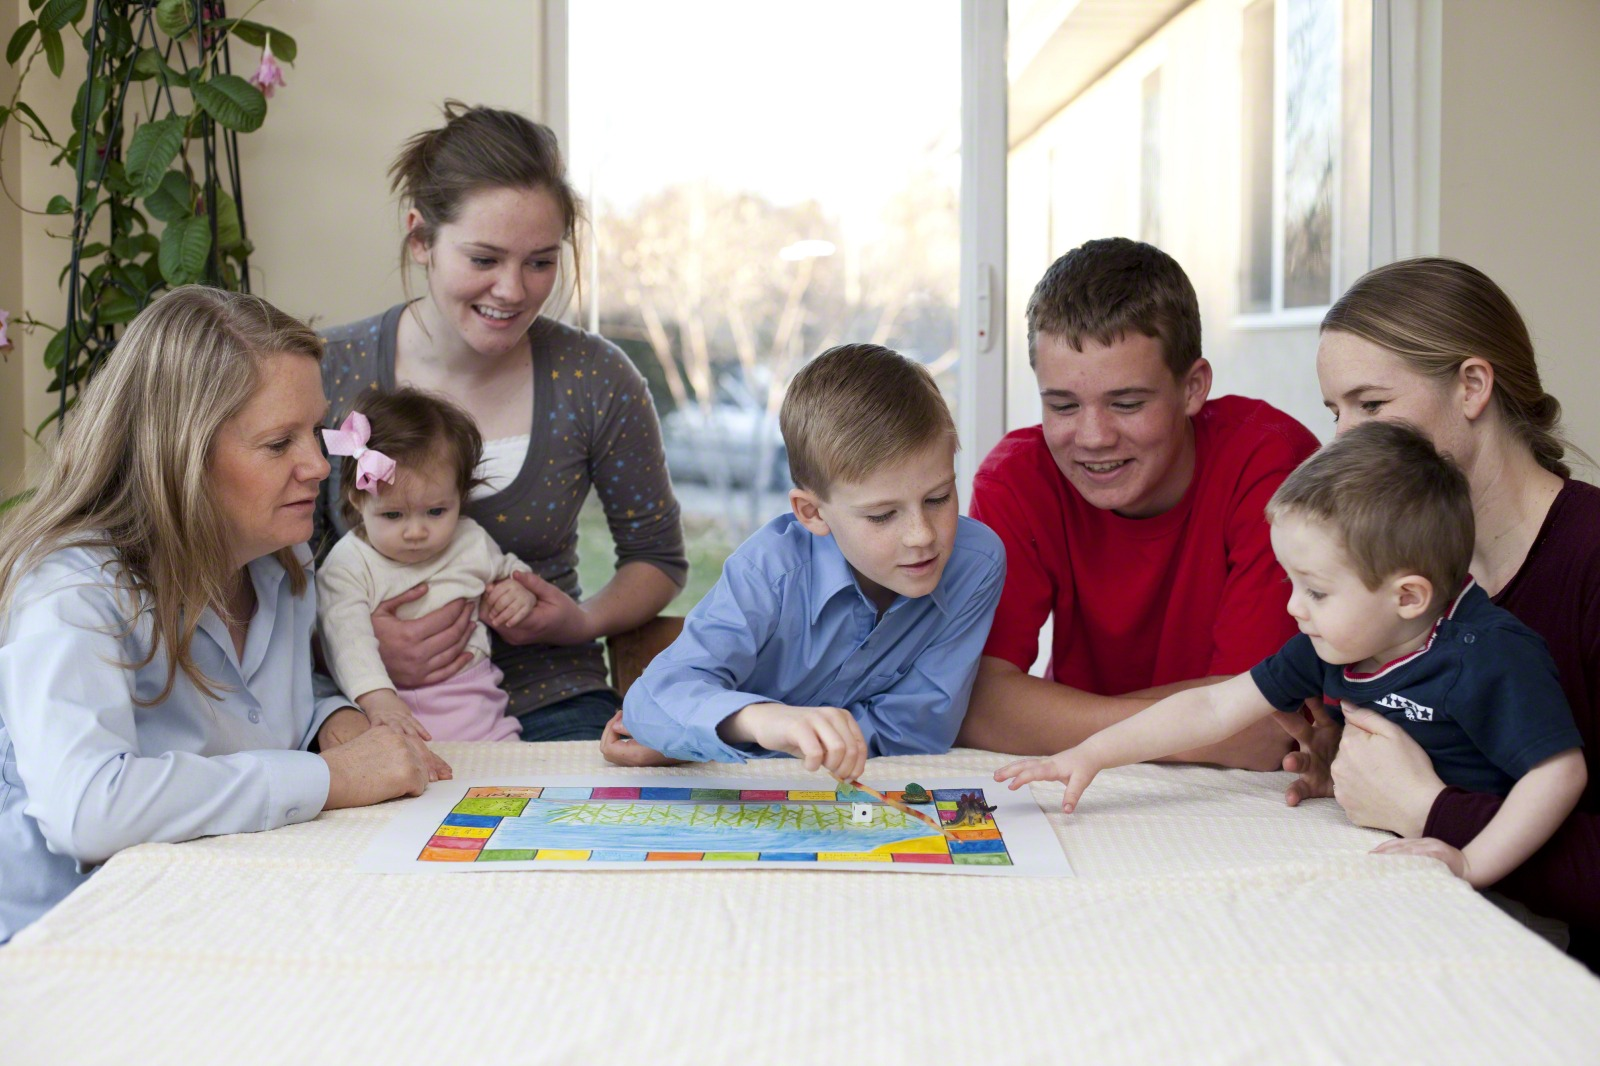 Family Board Games To Play At Home